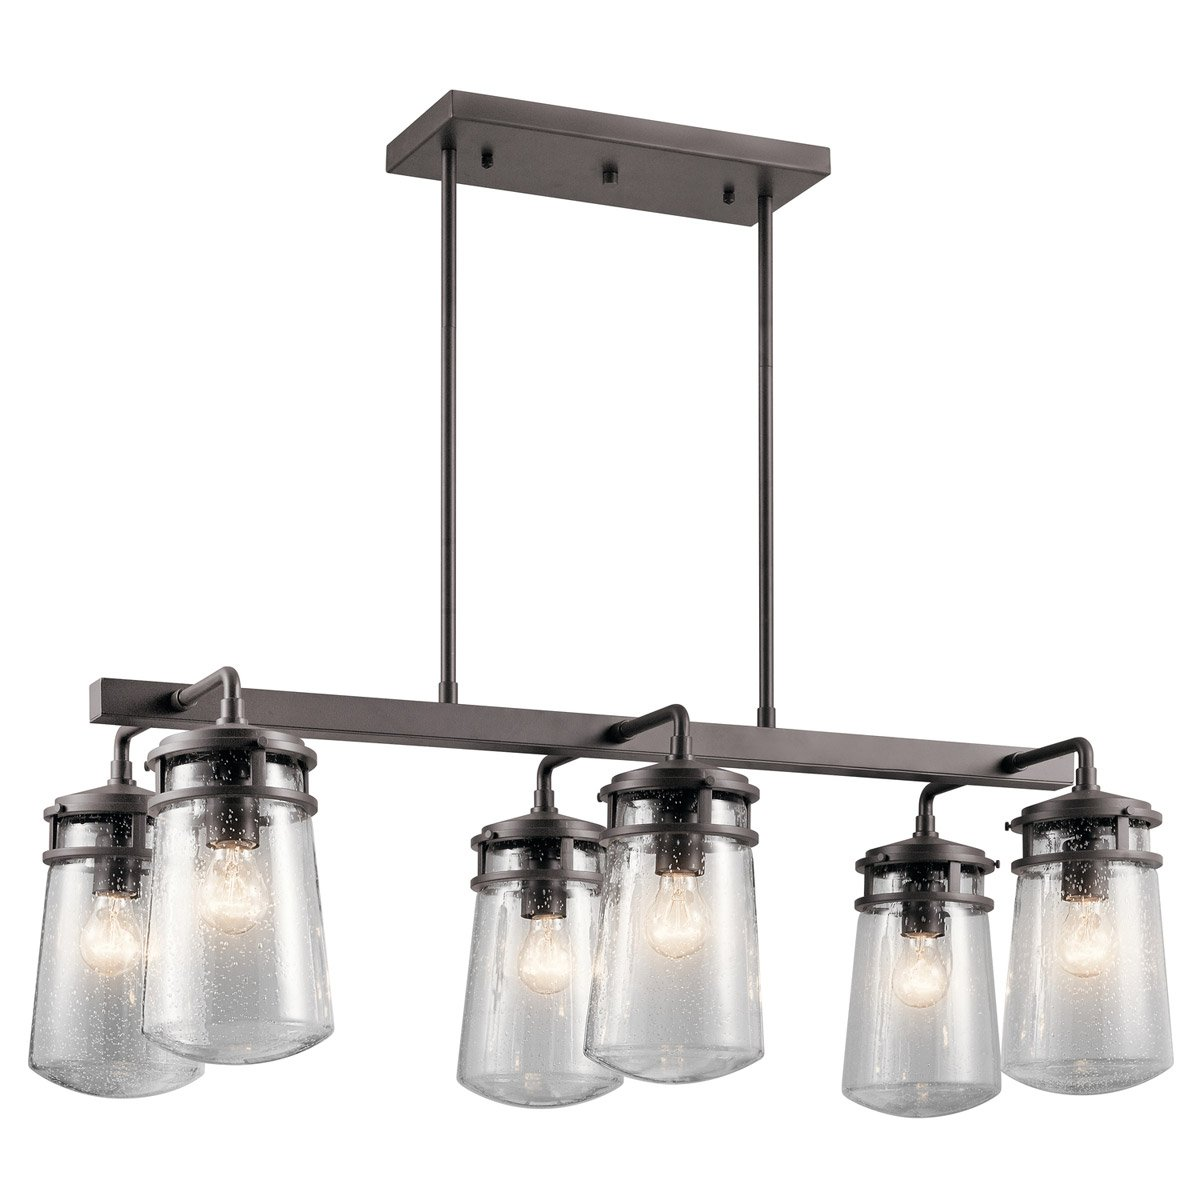 Kichler 49835AZ Six Light Outdoor Linear Chandelier